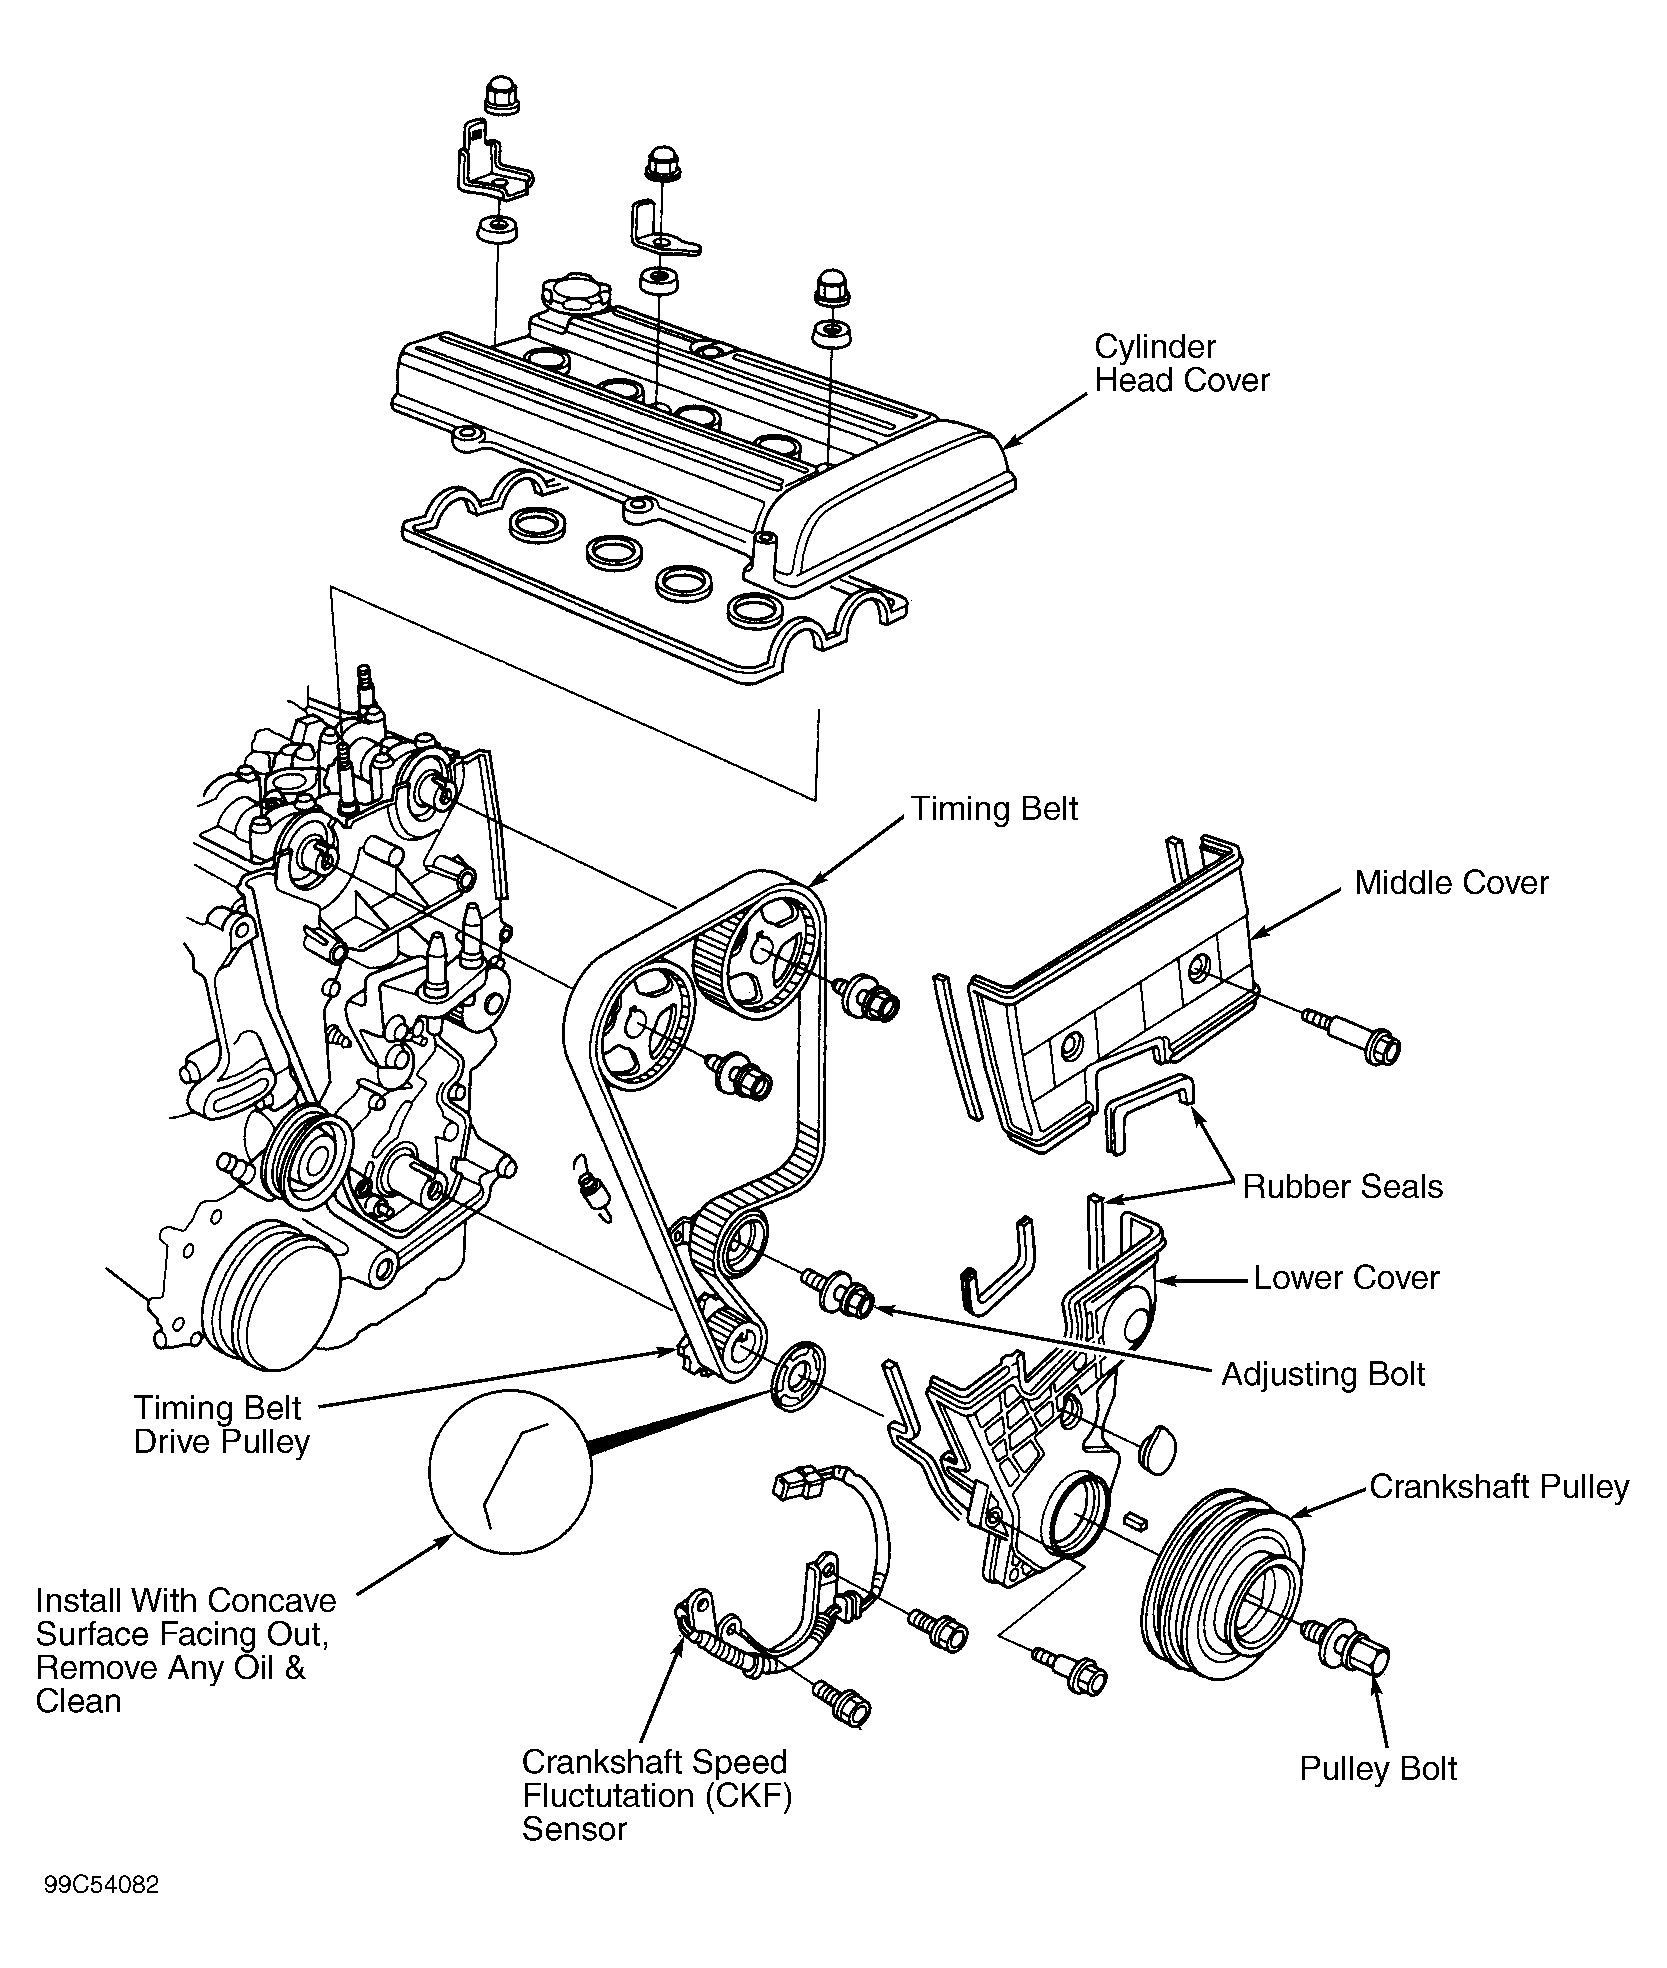 [SCHEMATICS_49CH]  Honda Crv Engine Diagram Wiring Diagram 2003 Ford Excursion Engine Diagram  2003 Honda Crv Engine Diagram #4 in 2020 | Honda crv, Ford excursion, Honda | 2003 Honda Crv Engine Diagram |  | Pinterest